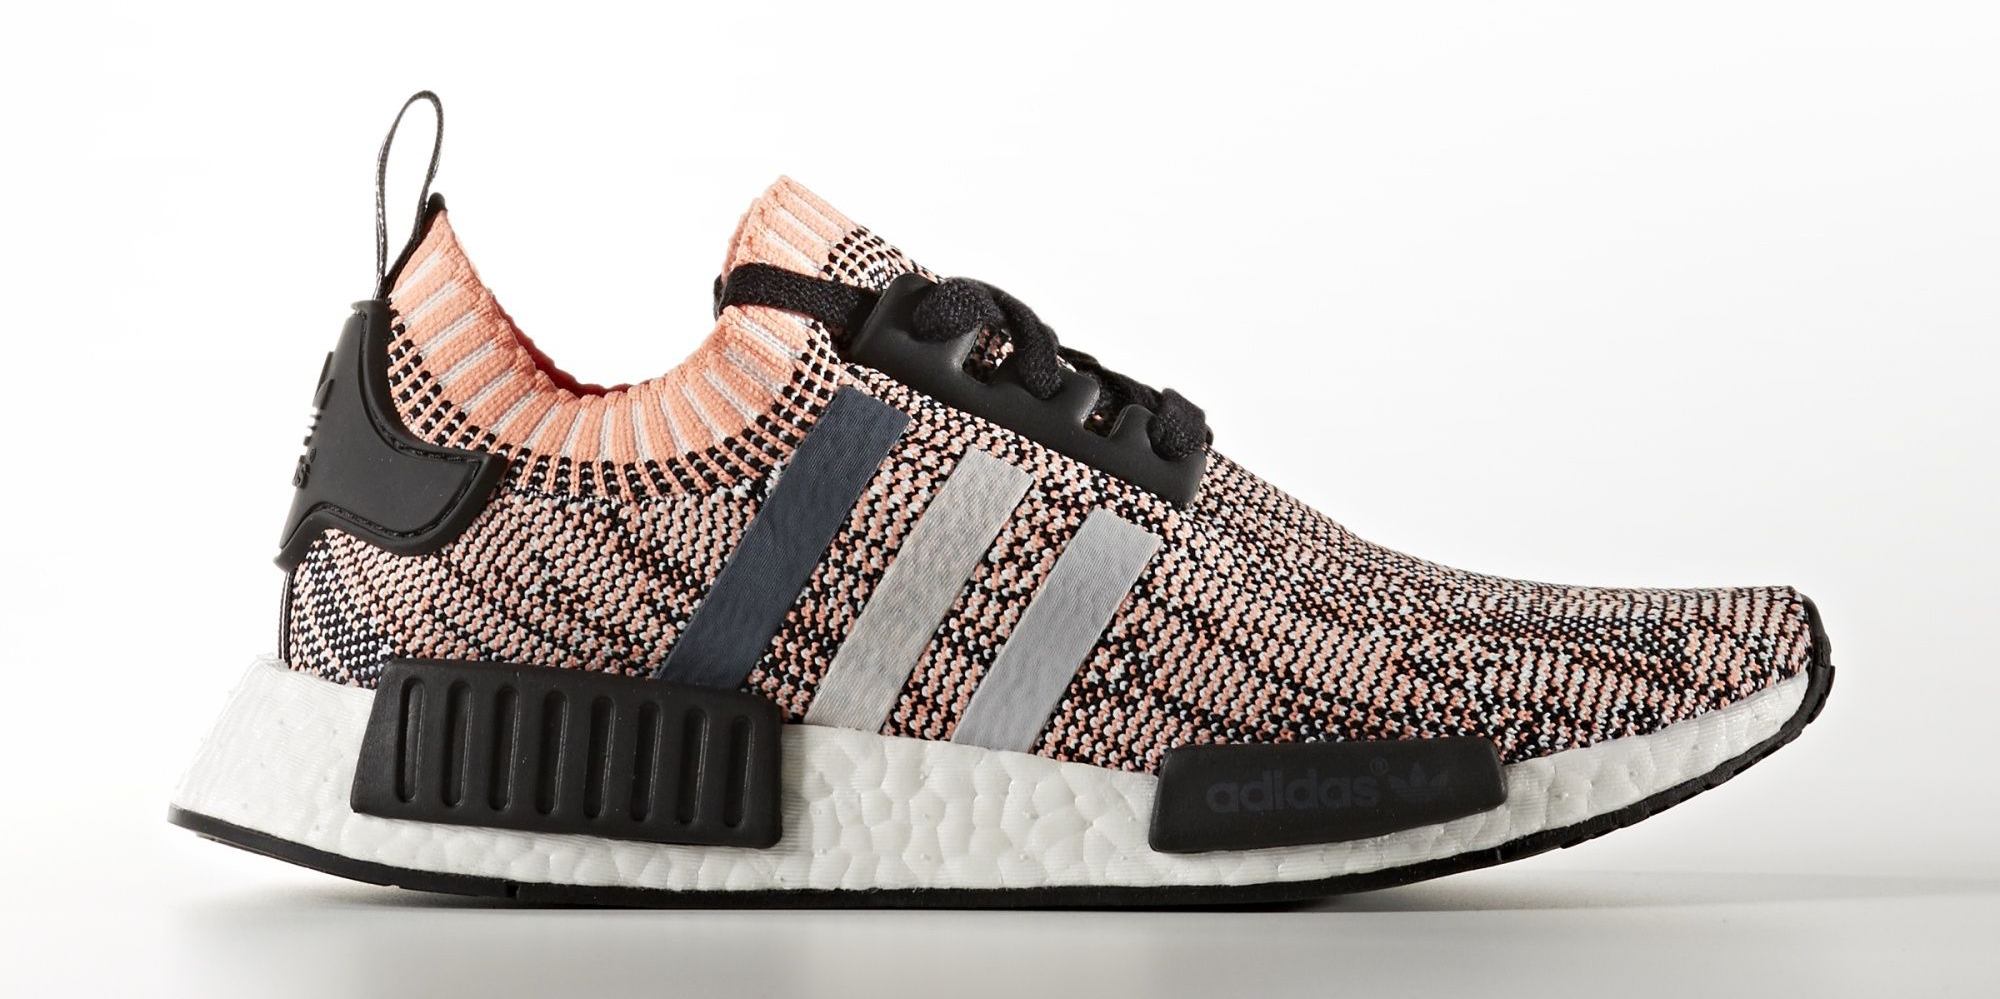 Adidas team up with Amanda Taylor to launch the new NMD R2